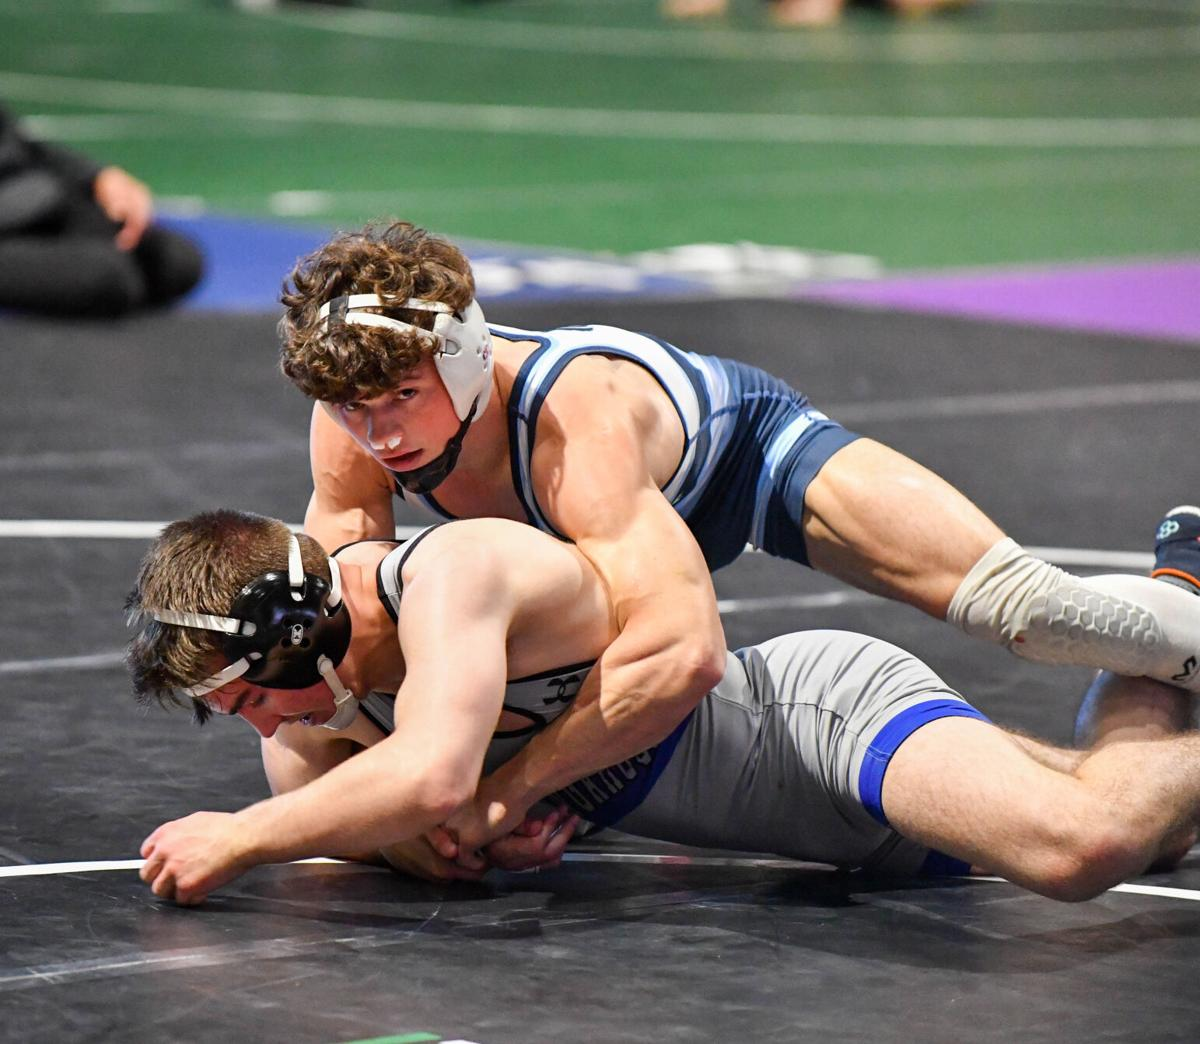 2021 Texas UIL State 6A Boys 138 Championship Finals.  #1 Tagen Jamison (Plano West) 12-0, Sr. over #5 Mason Woodward (Weatherford) 26-3, Sr. (MD 14-5)